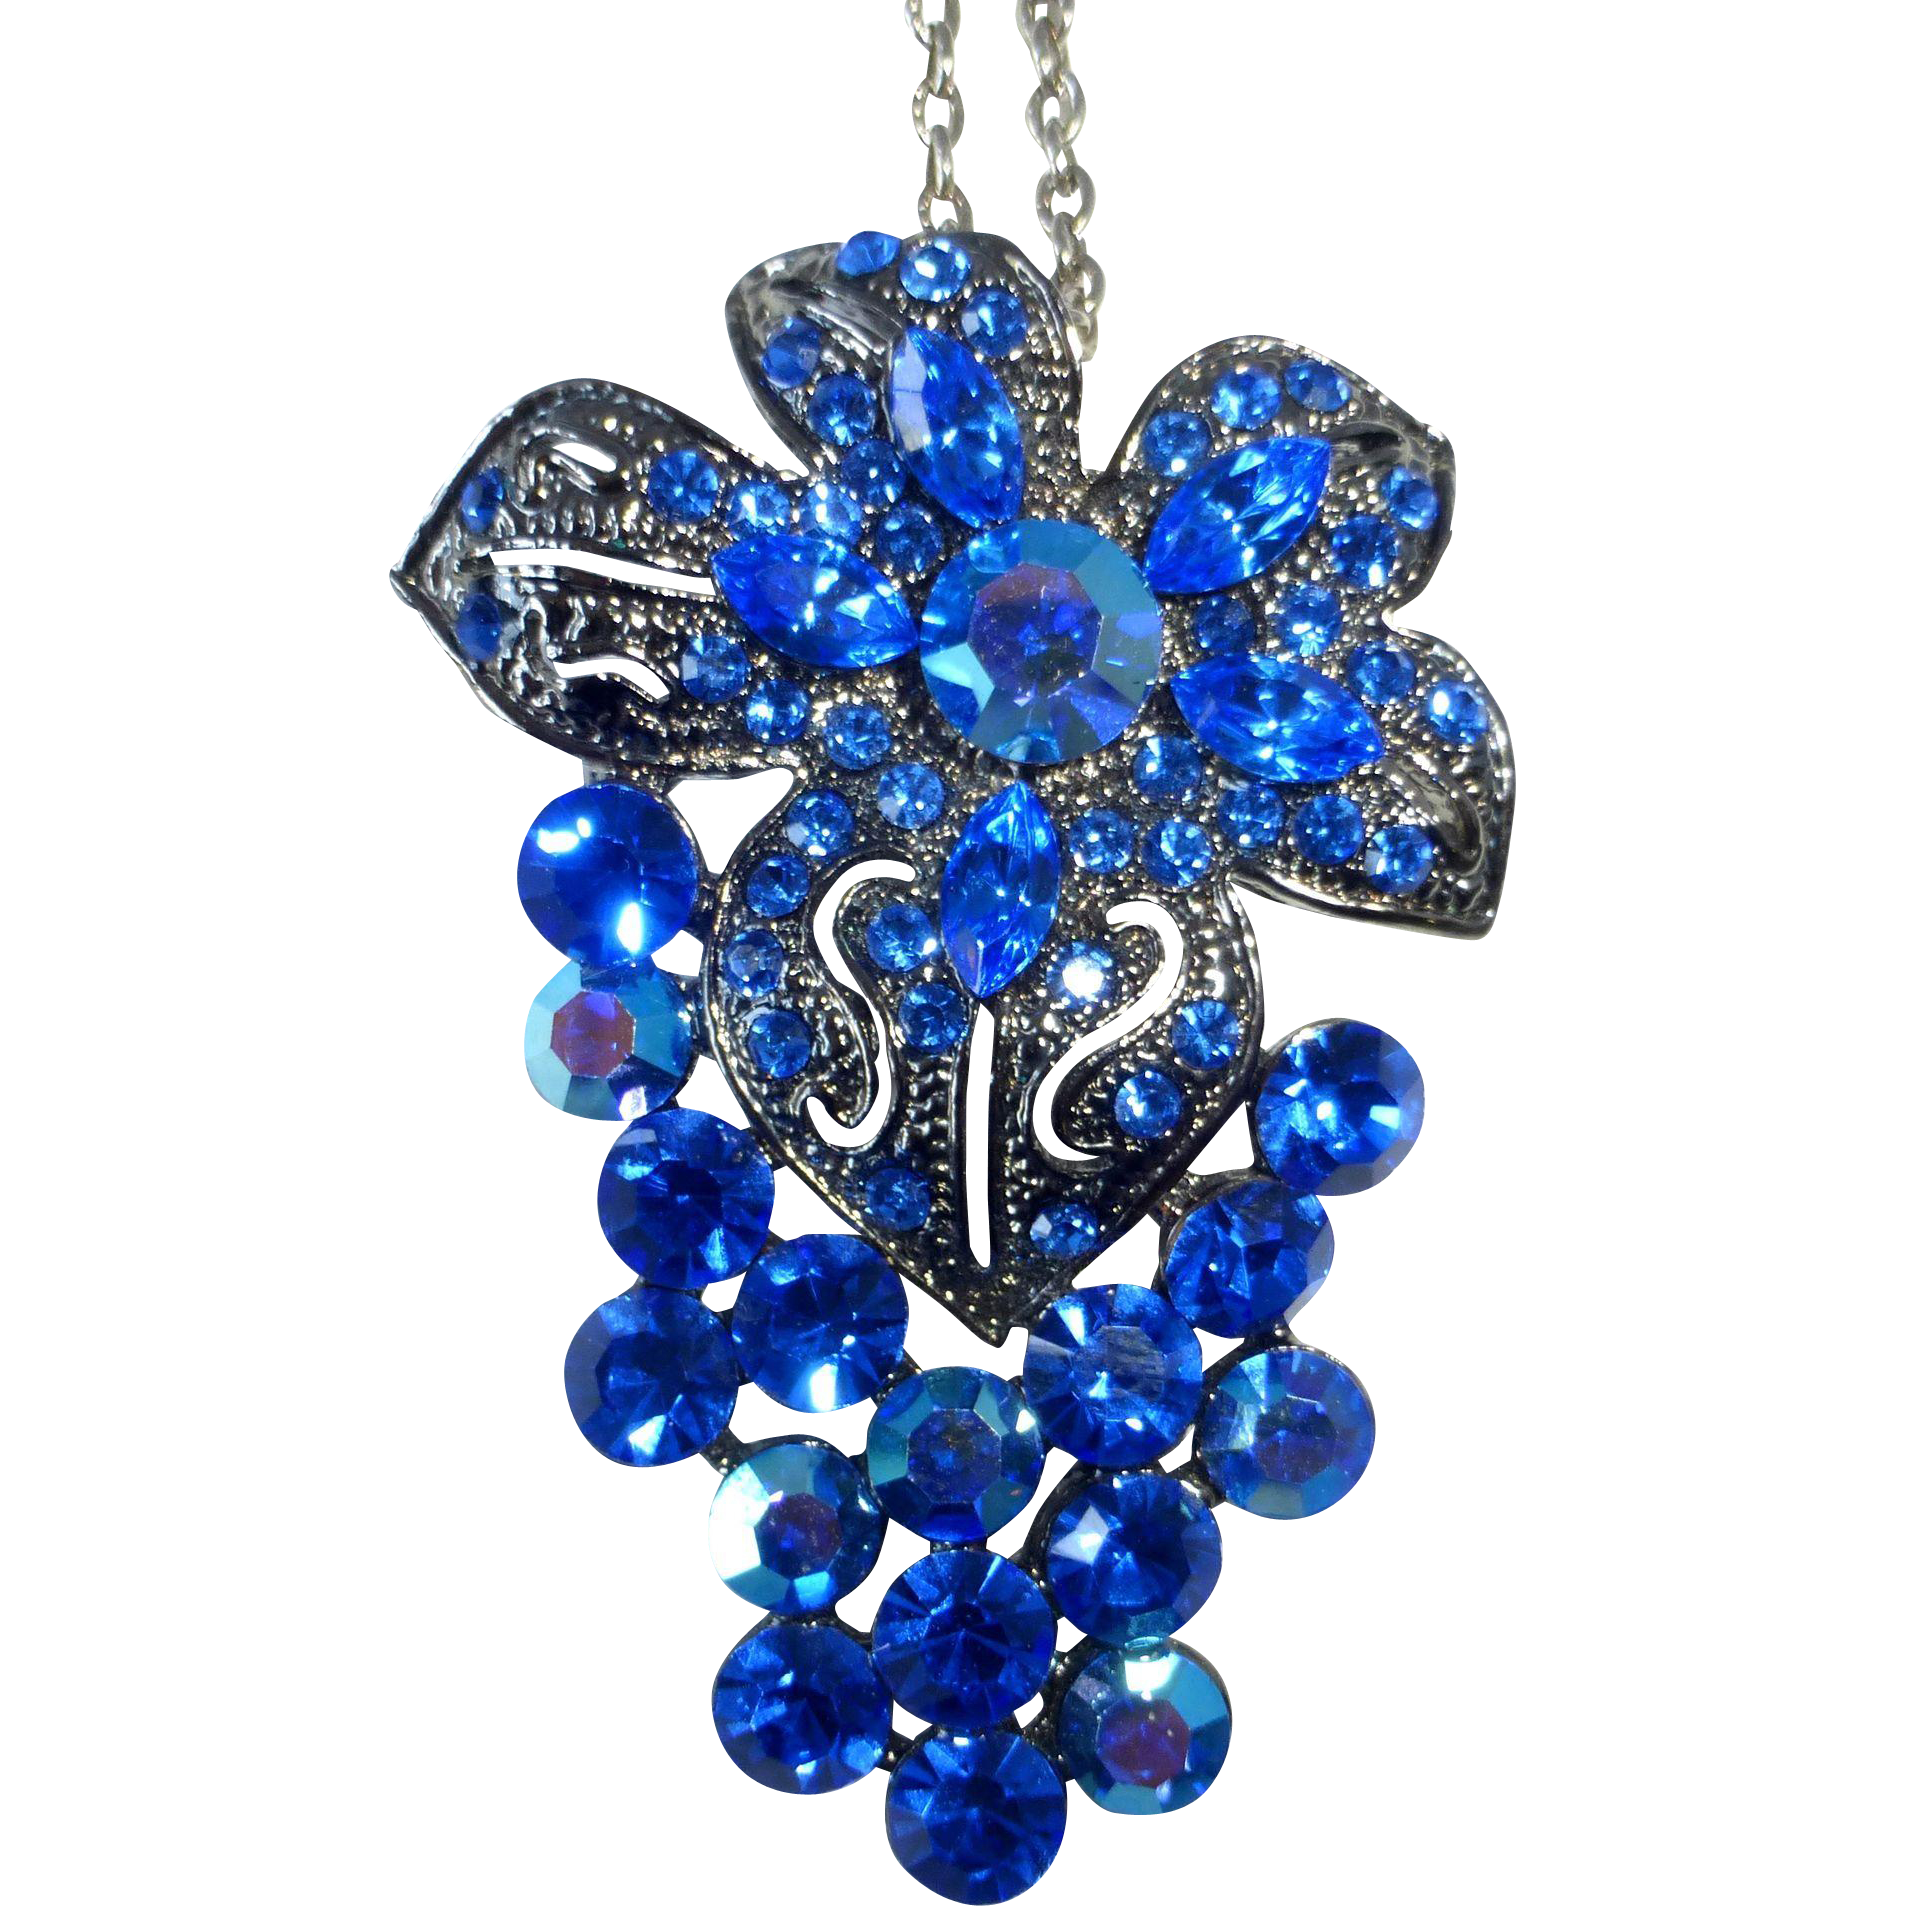 Sparkling Large Blue Rhinestone Grapes Pendant on Chain